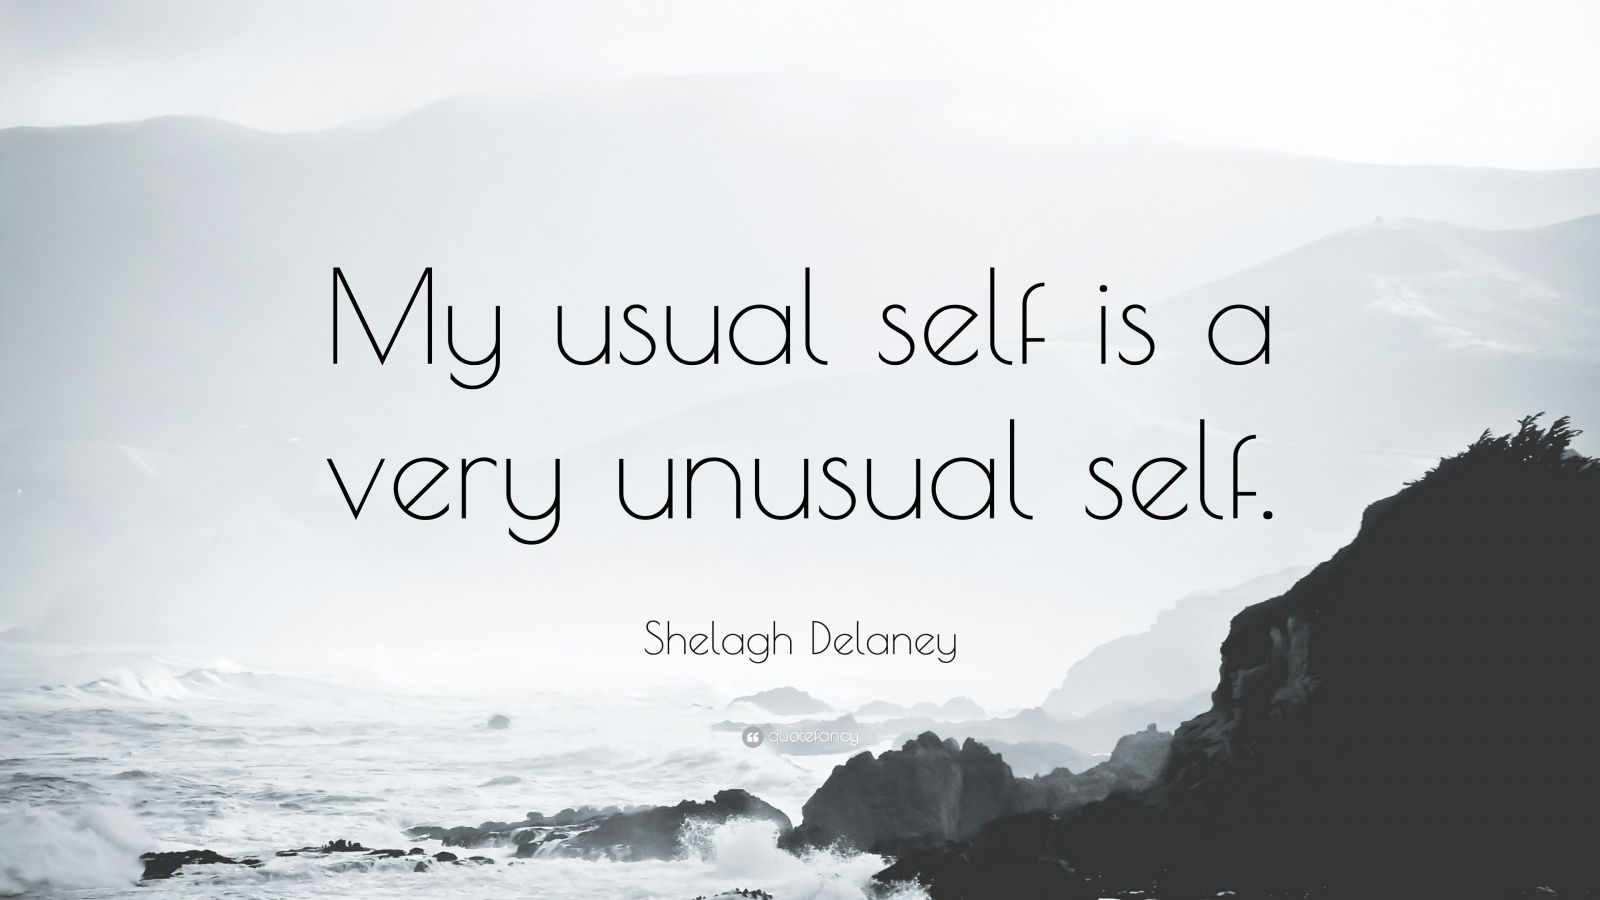 analysis of abduction by shelagh delaney Top quotes by shelagh delaney: [jo watches her go, leaning against the doorpost then she looks round the room, smiling a little to herself  browse top 9 most favorite famous quotes and sayings by shelagh delaney.